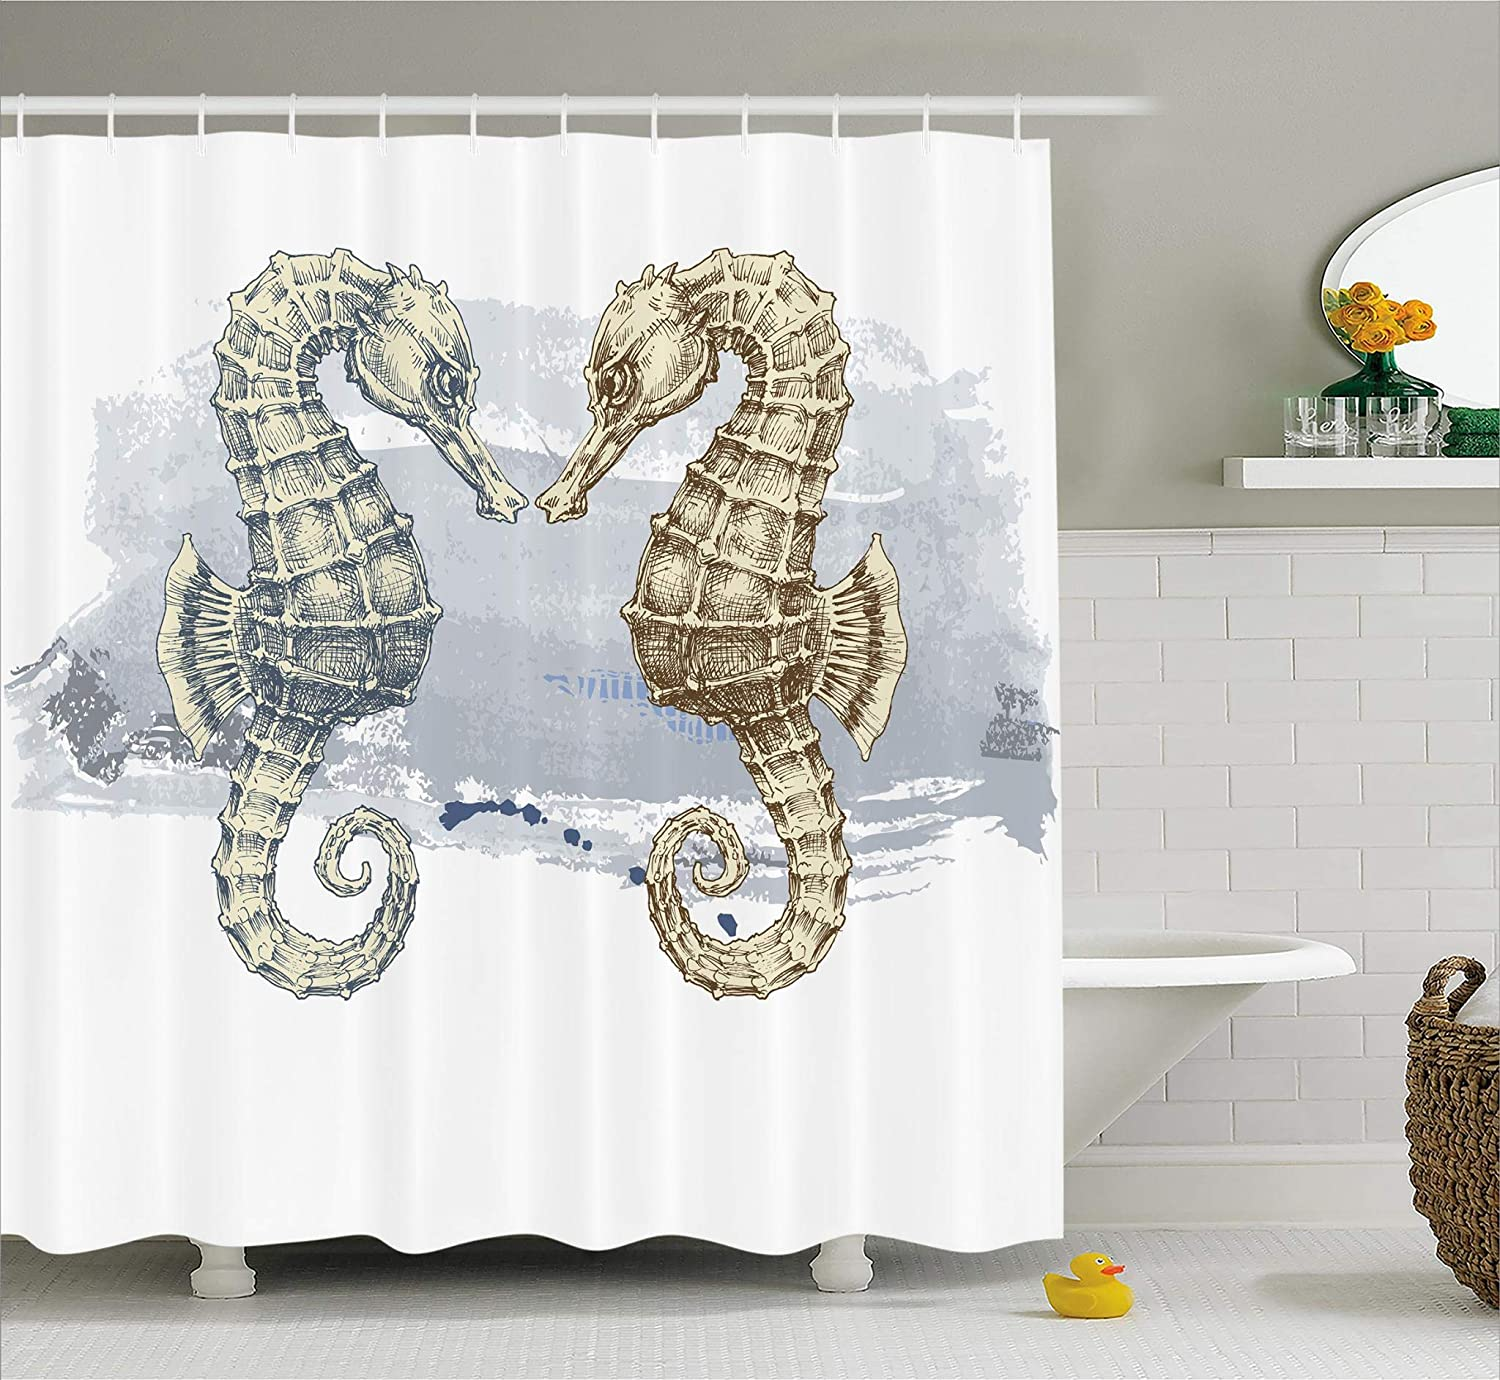 Ambesonne Shower Curtain Collection, Ocean Decor Fall Wooden Bridge Seasons Lake House Nature Country Rustic Home Art Paintings Pictures for Bathroom Seascape Decorations, Brown Beige Khaki Yellow sc_0749